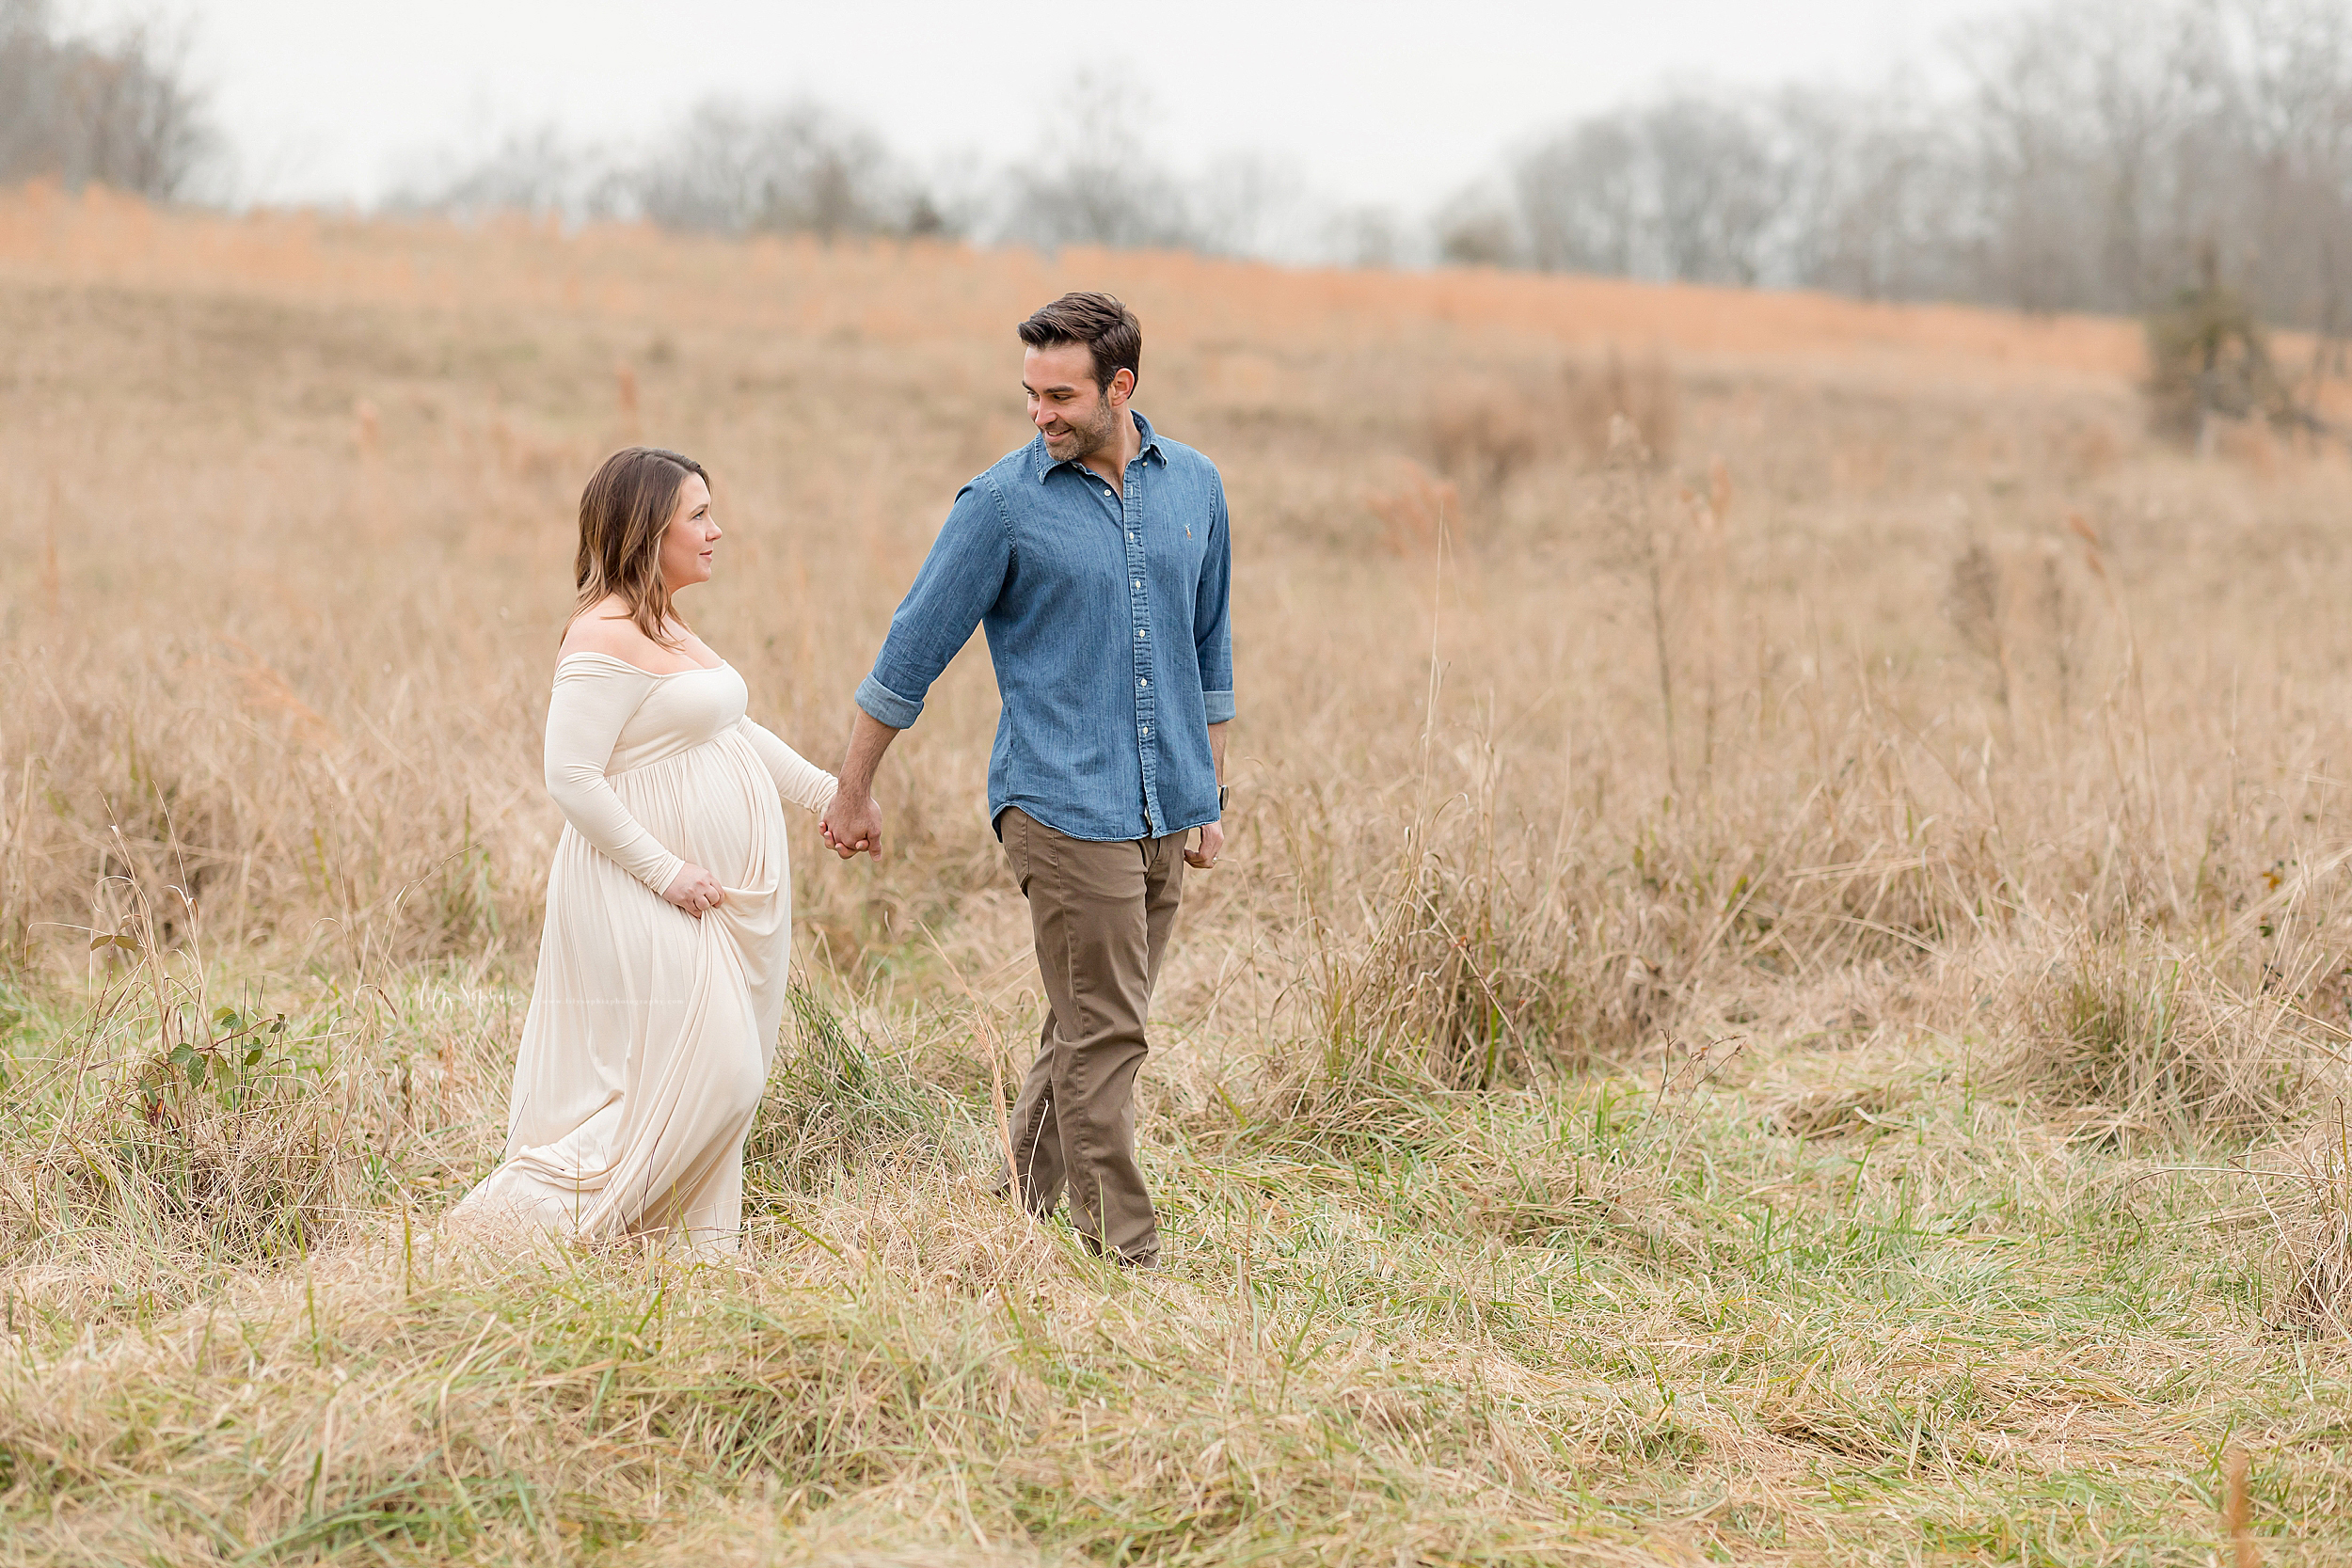 Expectant couple photographing maternity pictures in a field.  The husband leads his pregnant wife hand-in-hand in the field and looks reassuringly at her to express his love for her.